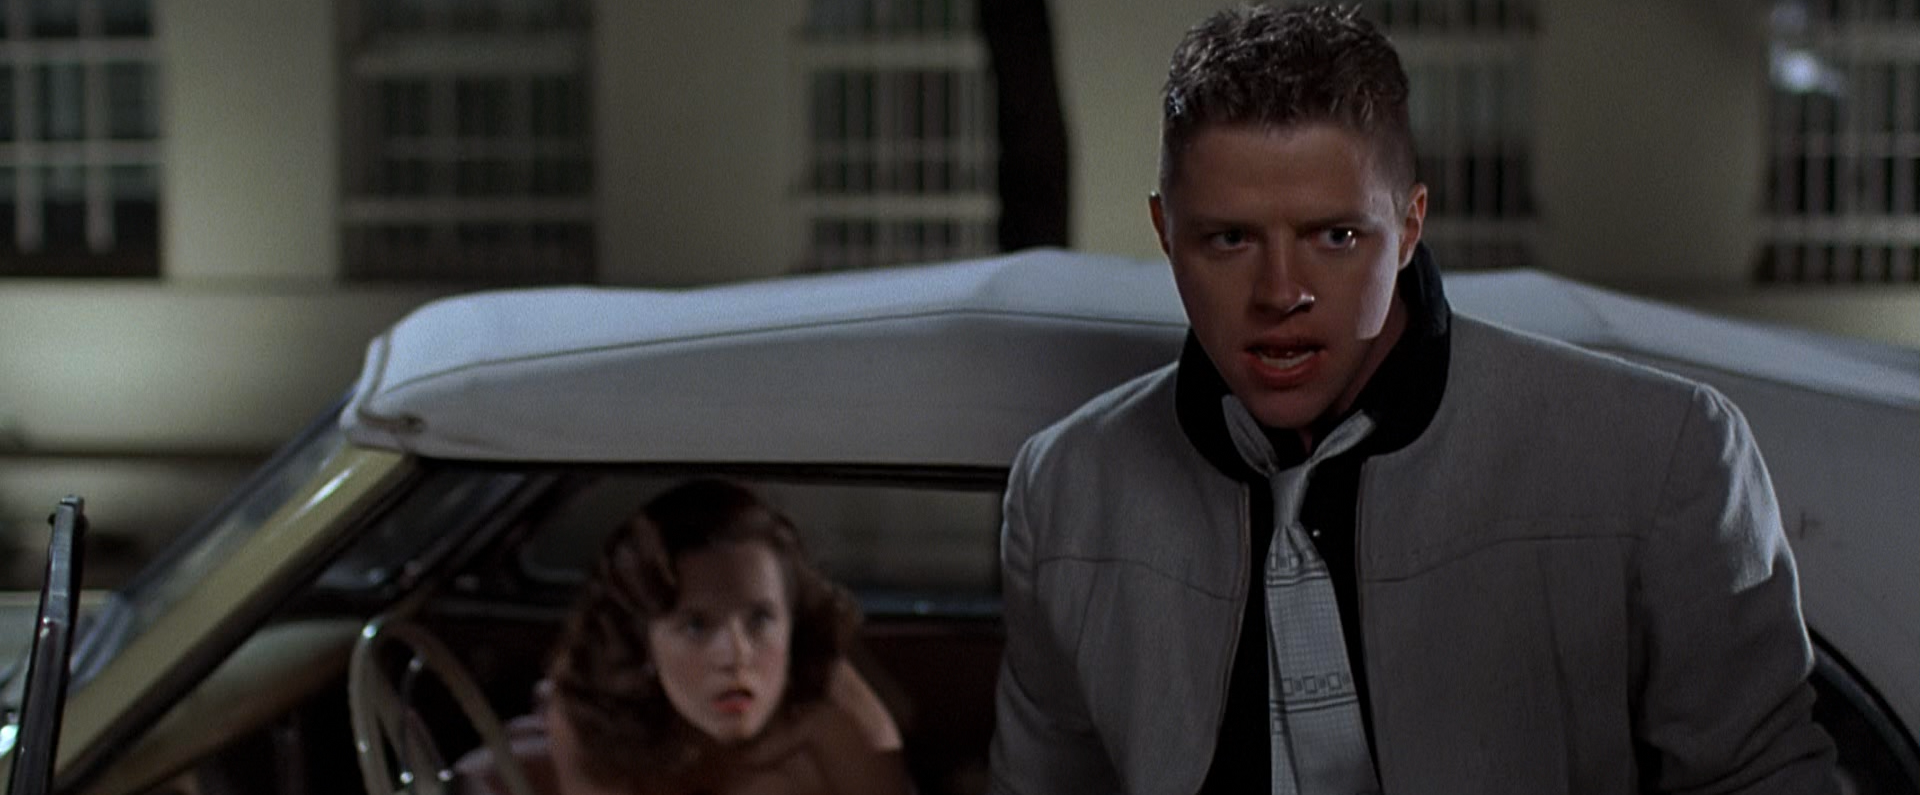 Biff is a menace in Back to the Future